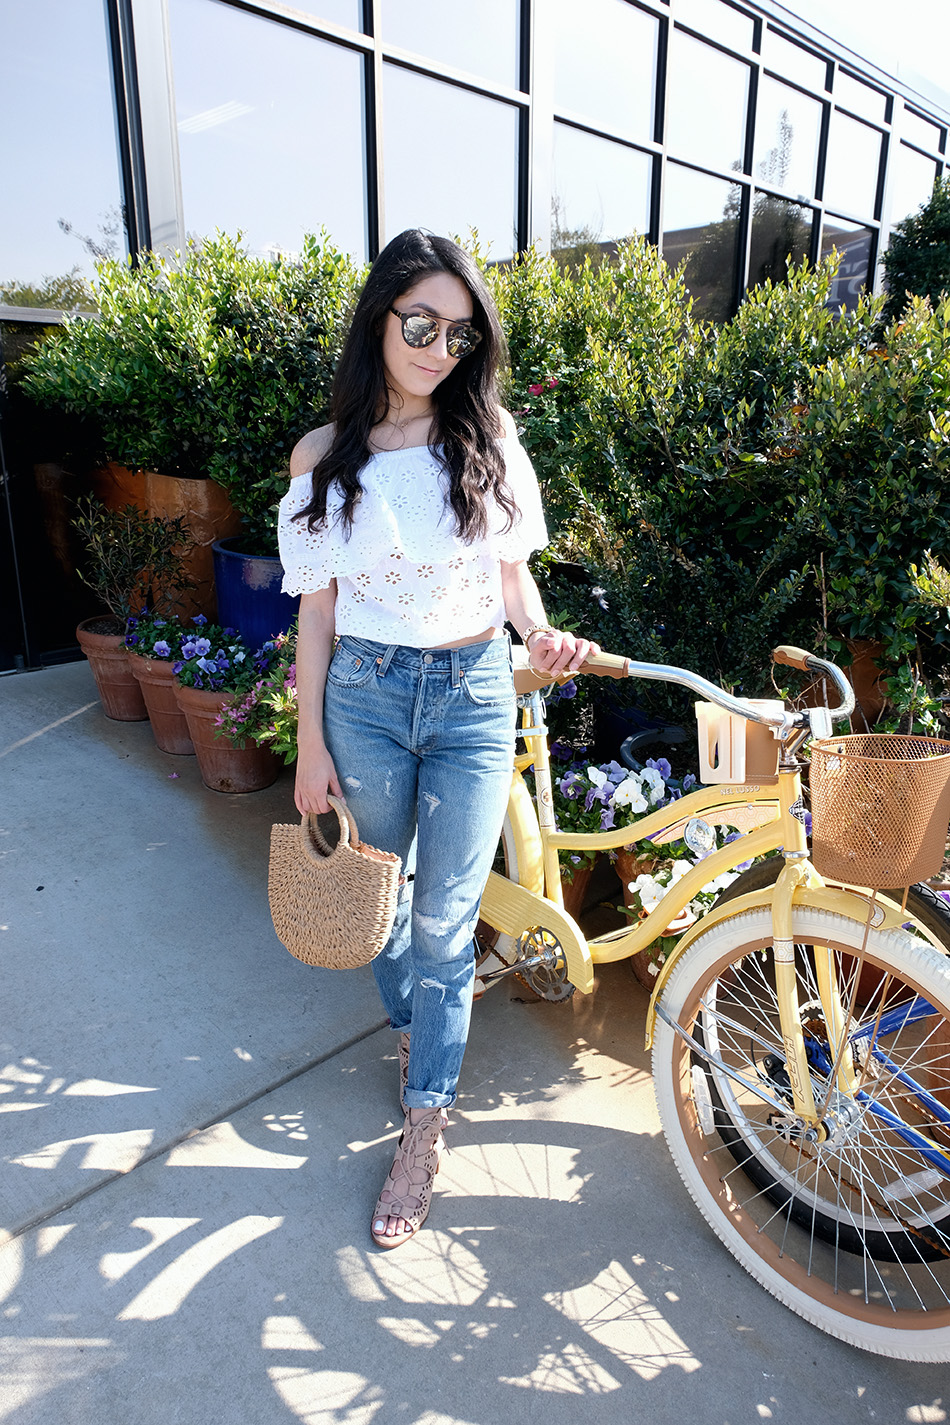 LEVIS 501 SKINNY | EASY SPRING OUTFITS | HOW TO STYLE STRAW BAG SUMMER SPRING